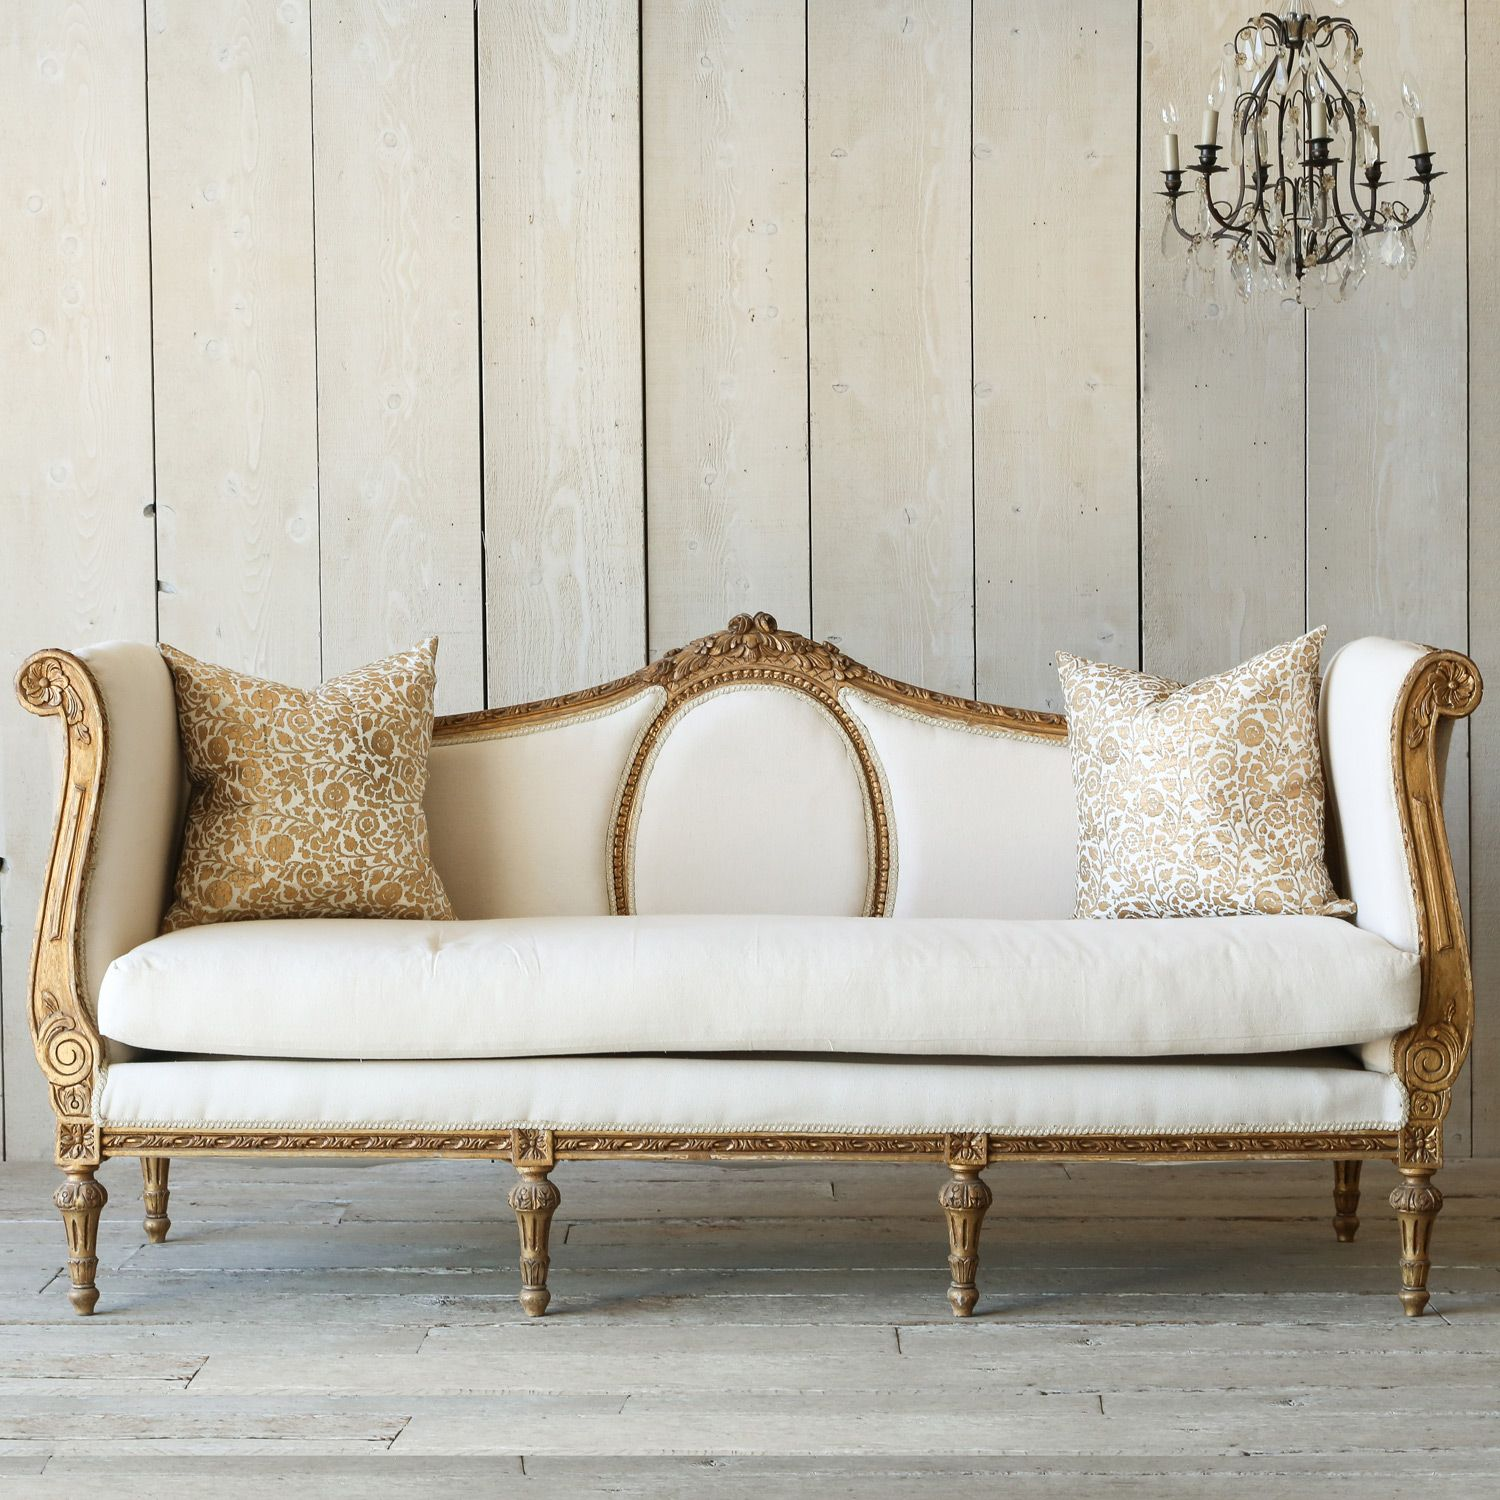 Antike Sofas Contemporary Eloquence One Of A Kind Vintage Daybed Italianate Deep Gilt